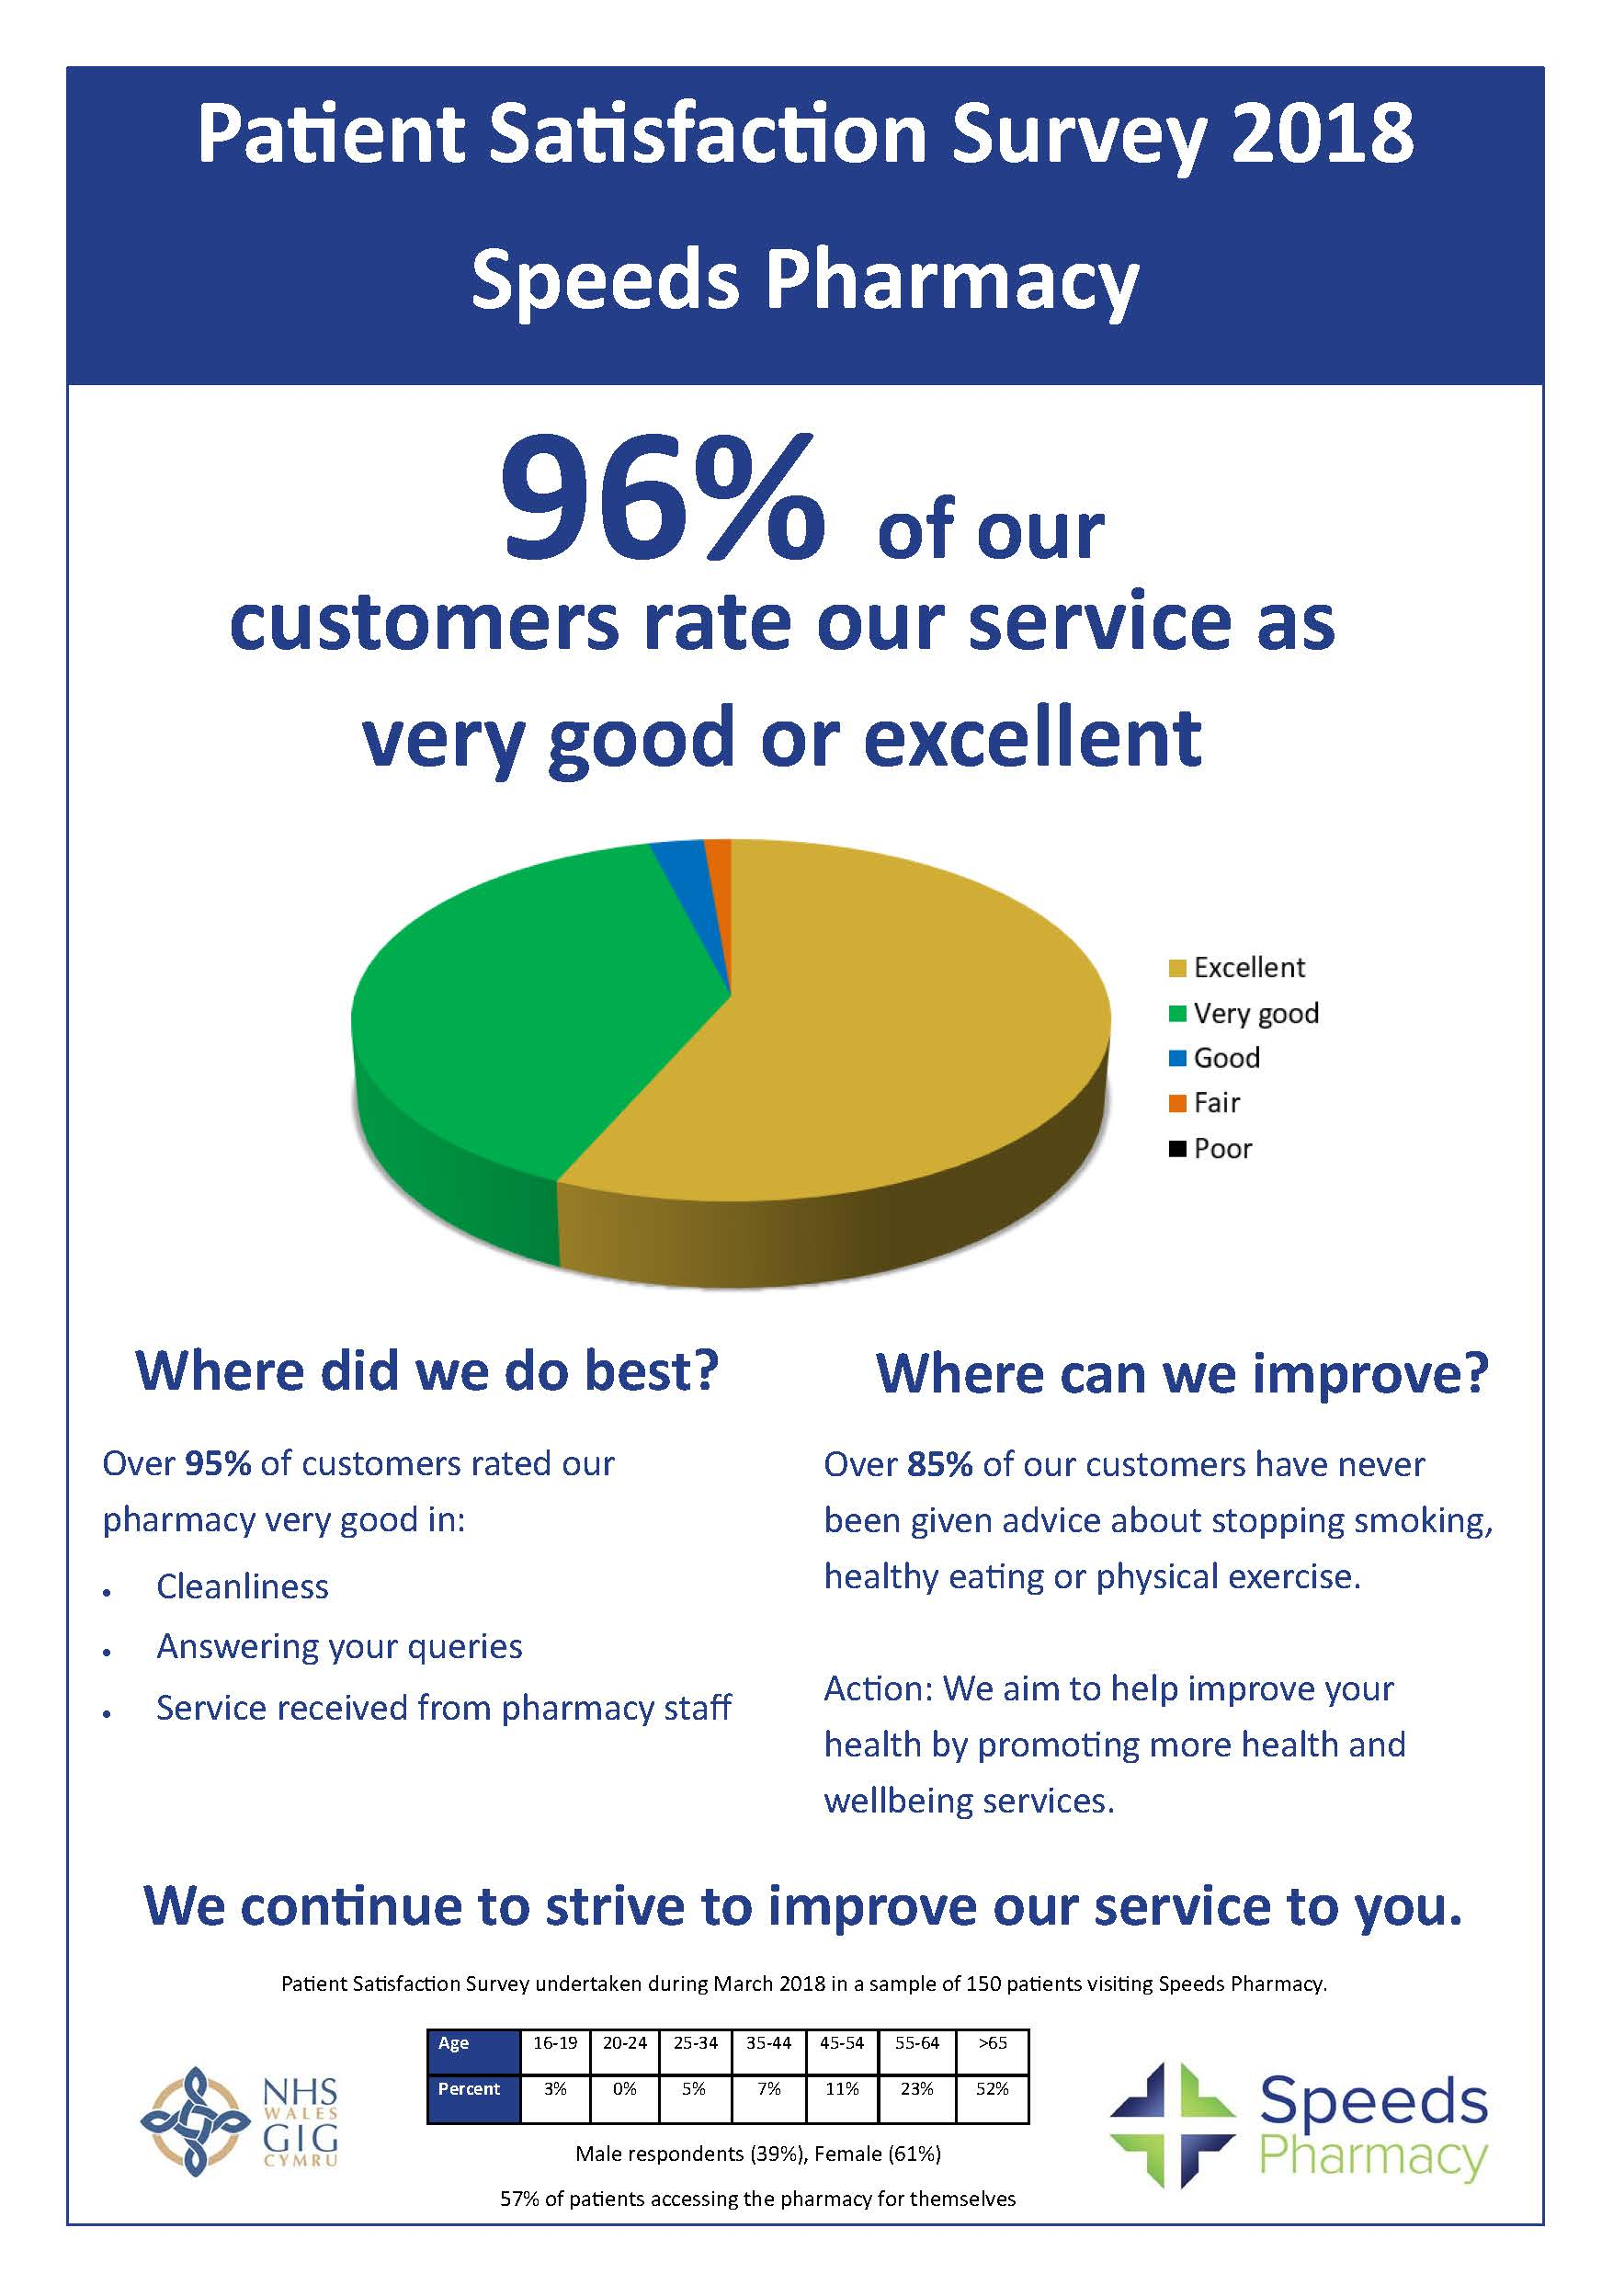 Patient Satisfaction Survey Results 2018